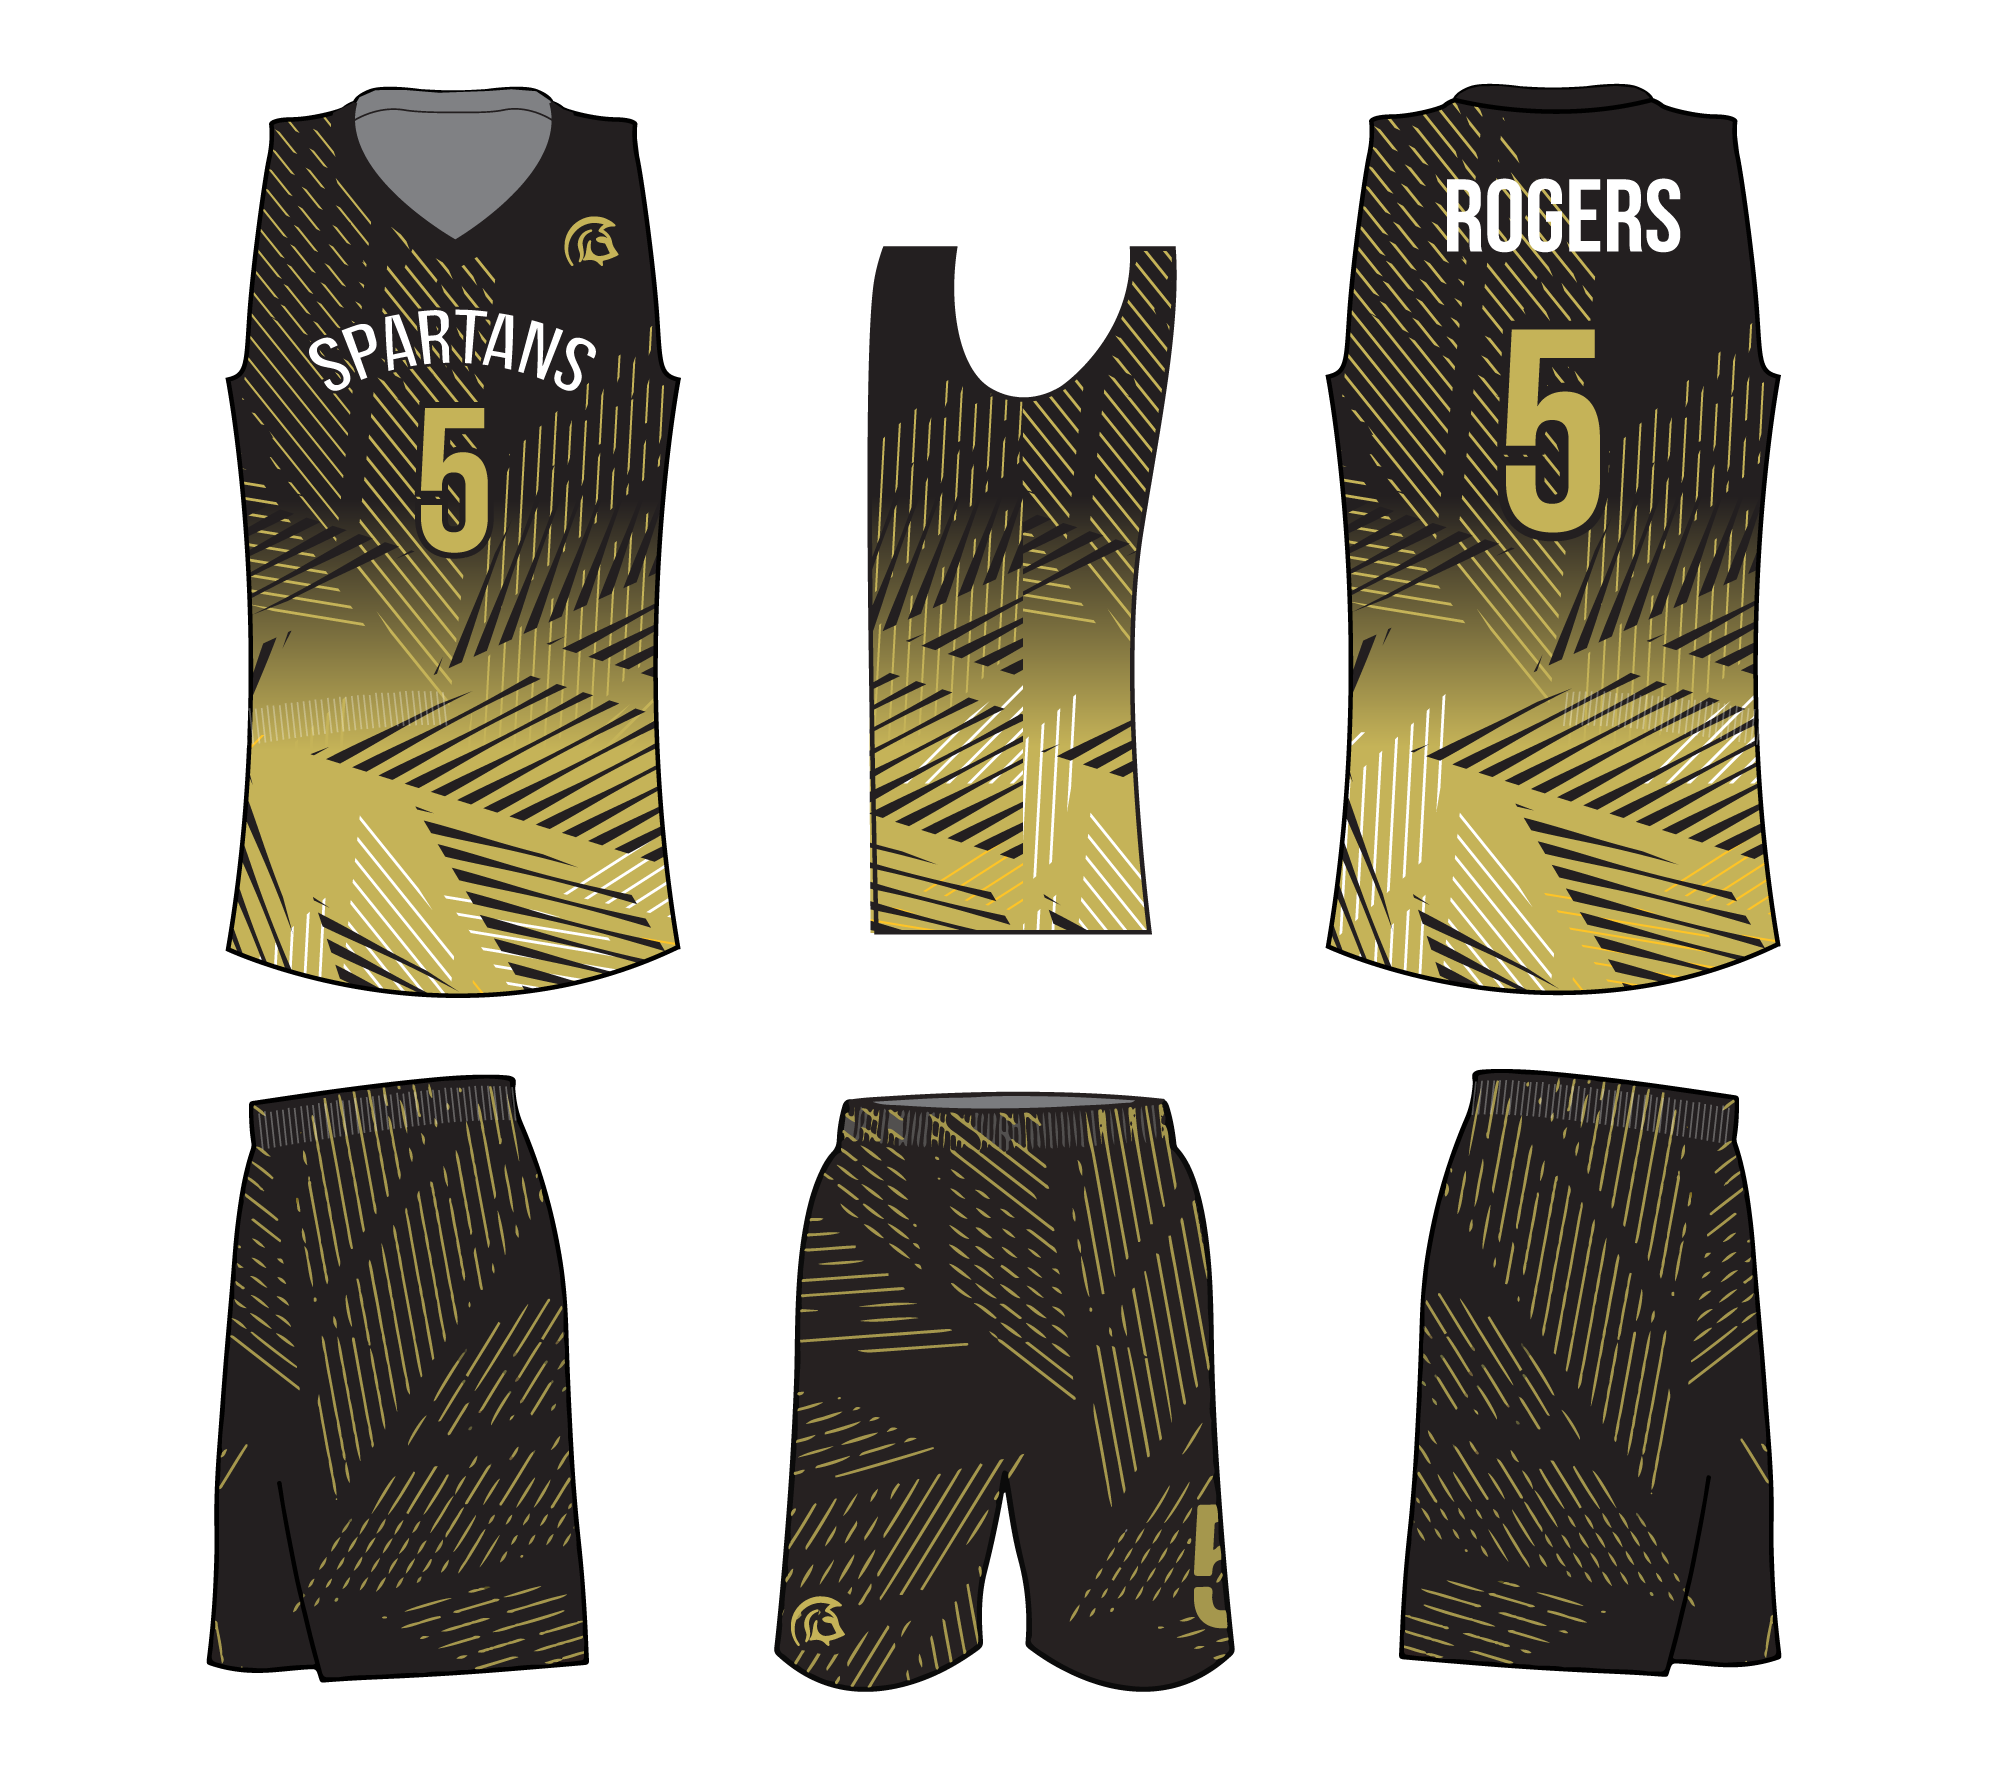 ROGERS Beige White and Grey Basketball Uniforms, Jersey and Shorts